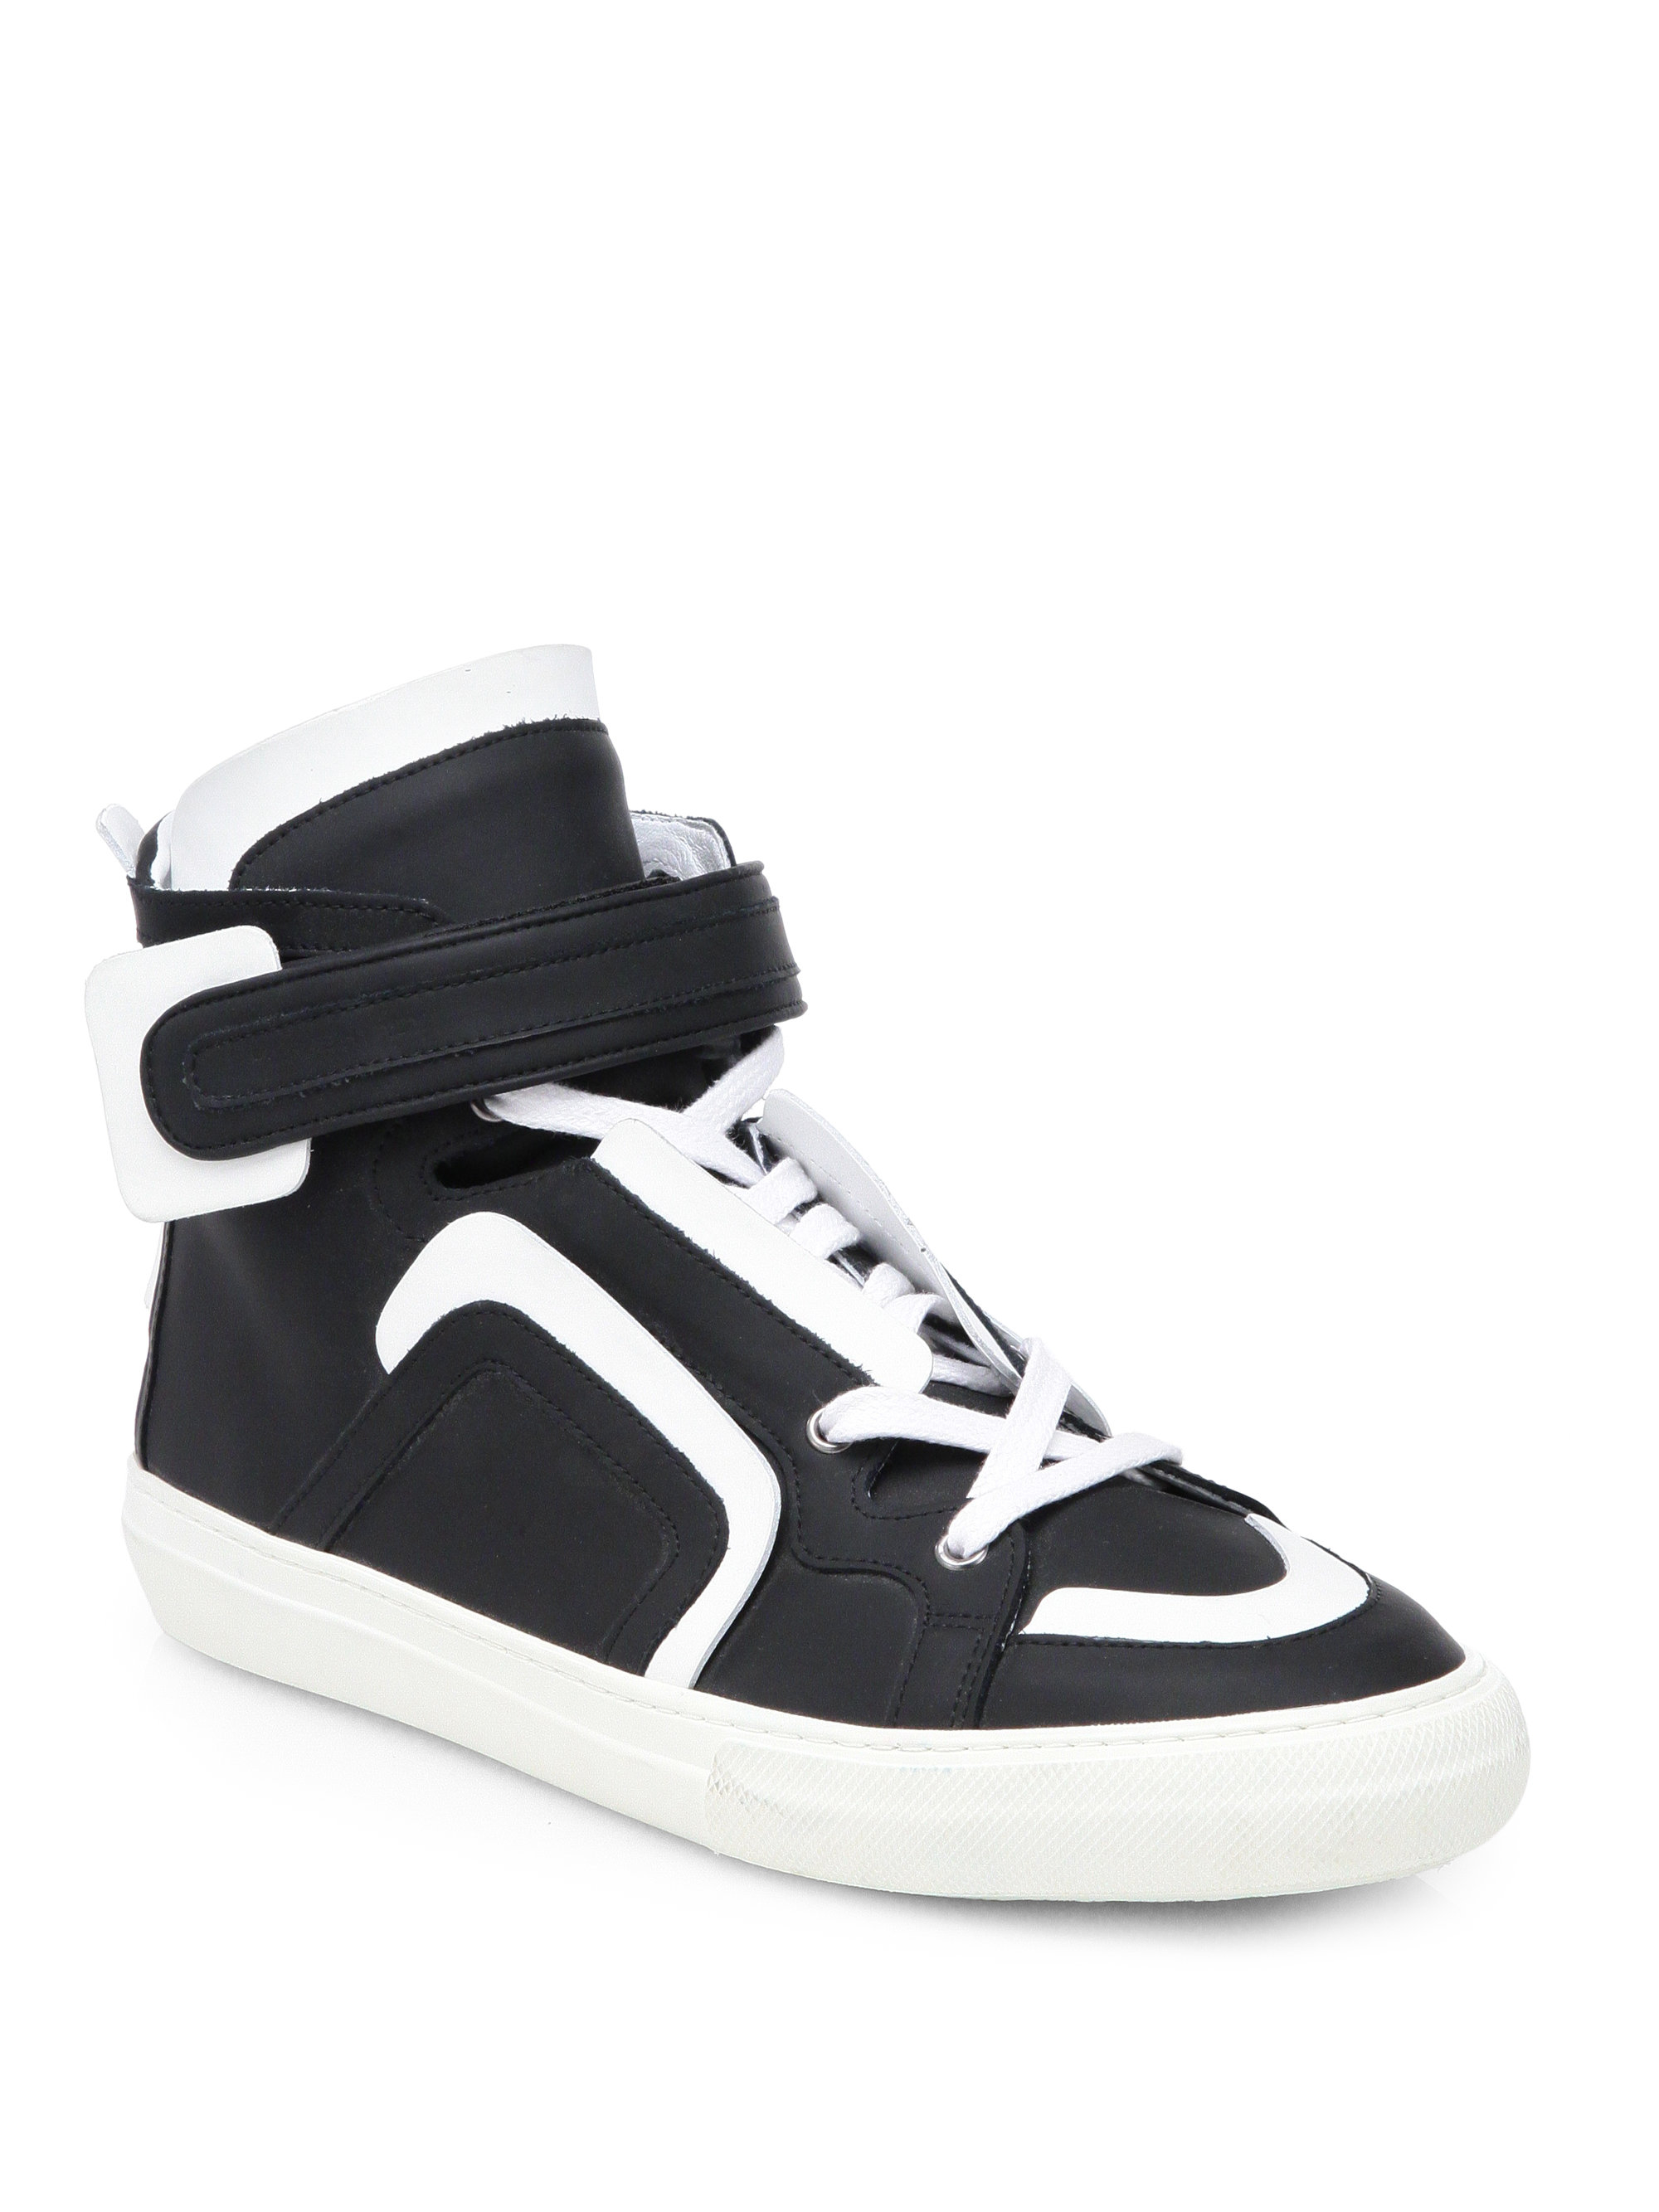 Pierre Hardy High Top Sneakers